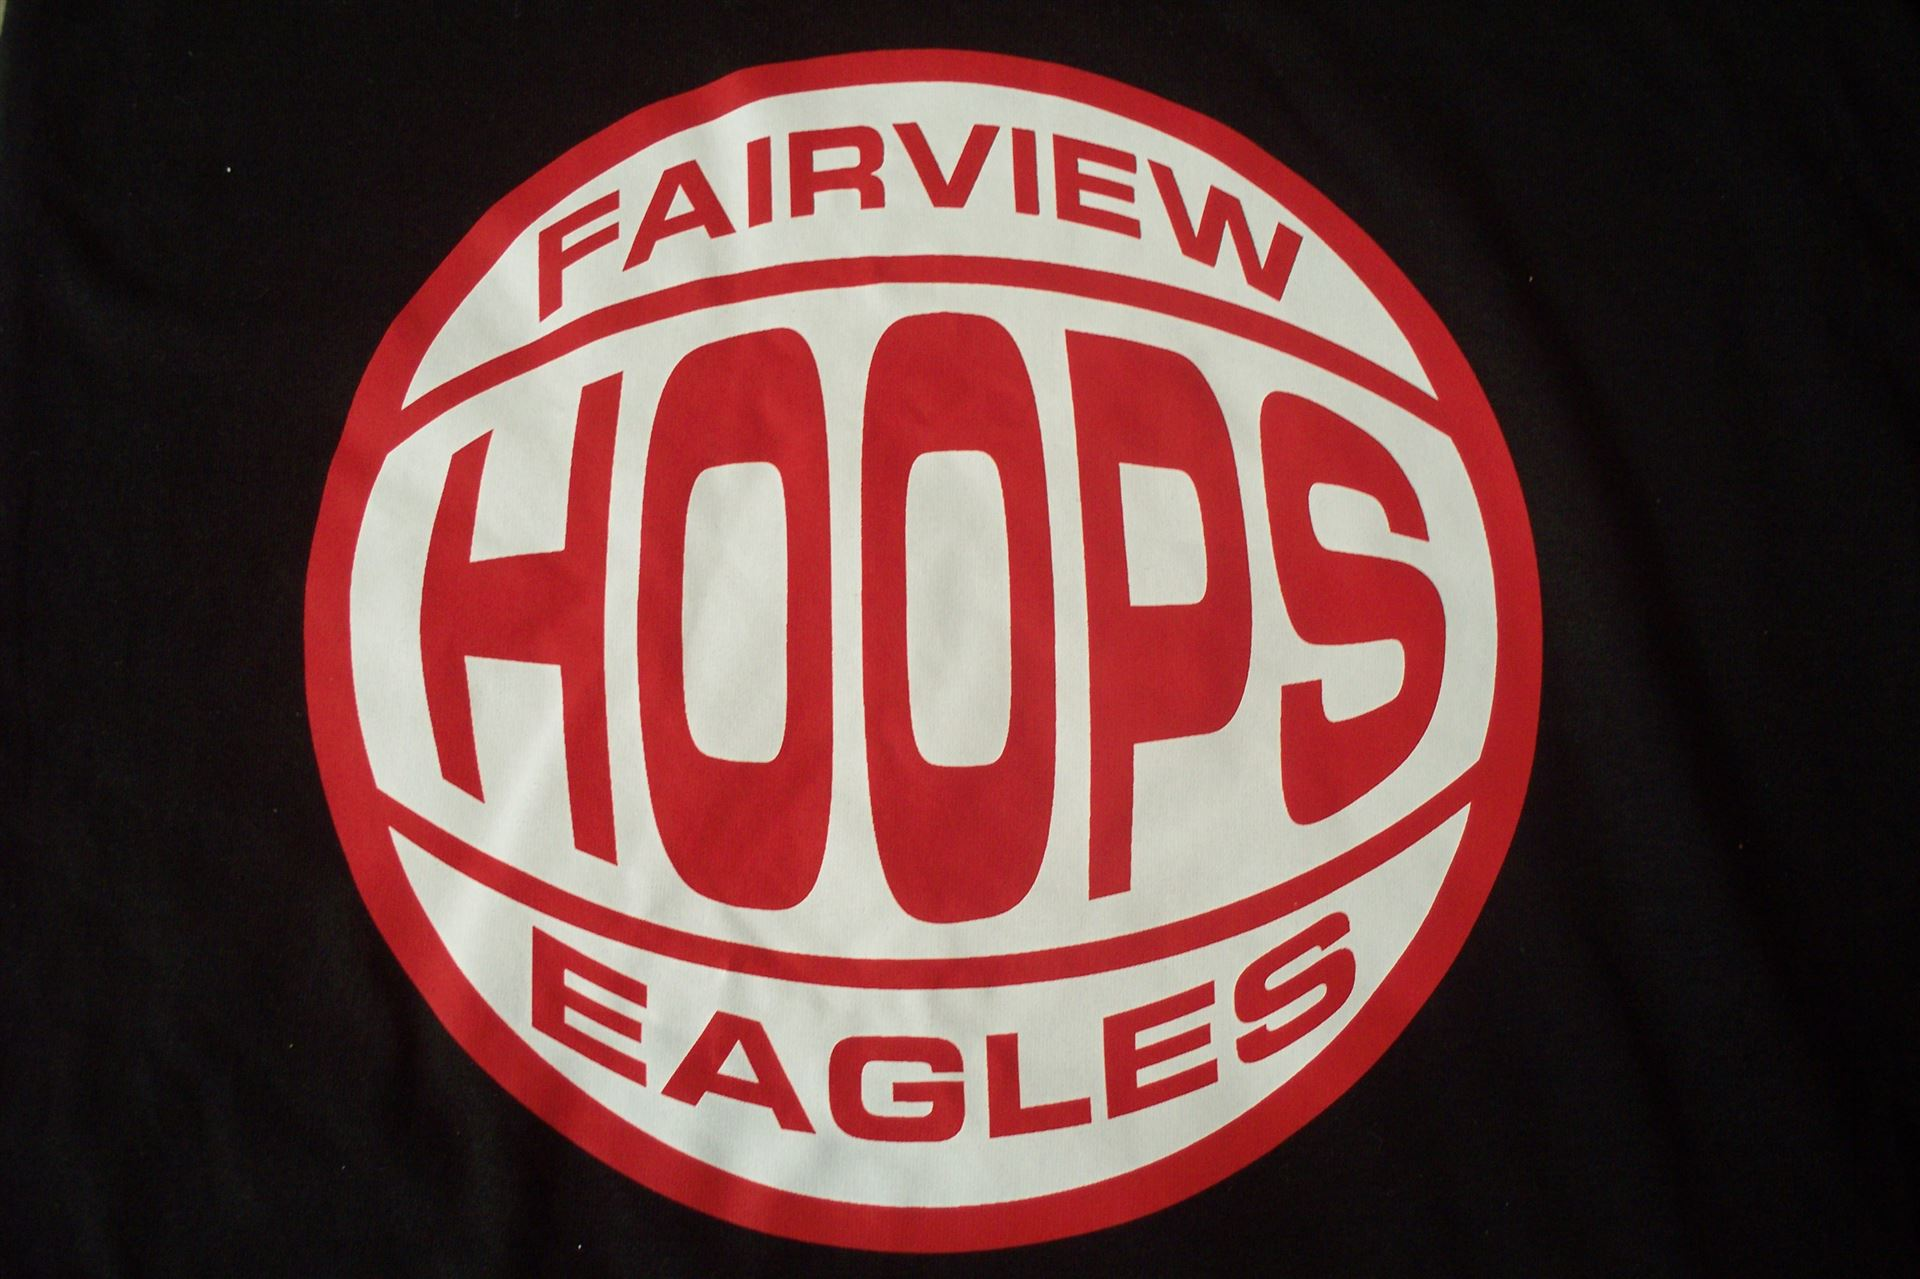 Fairview shirt design 3